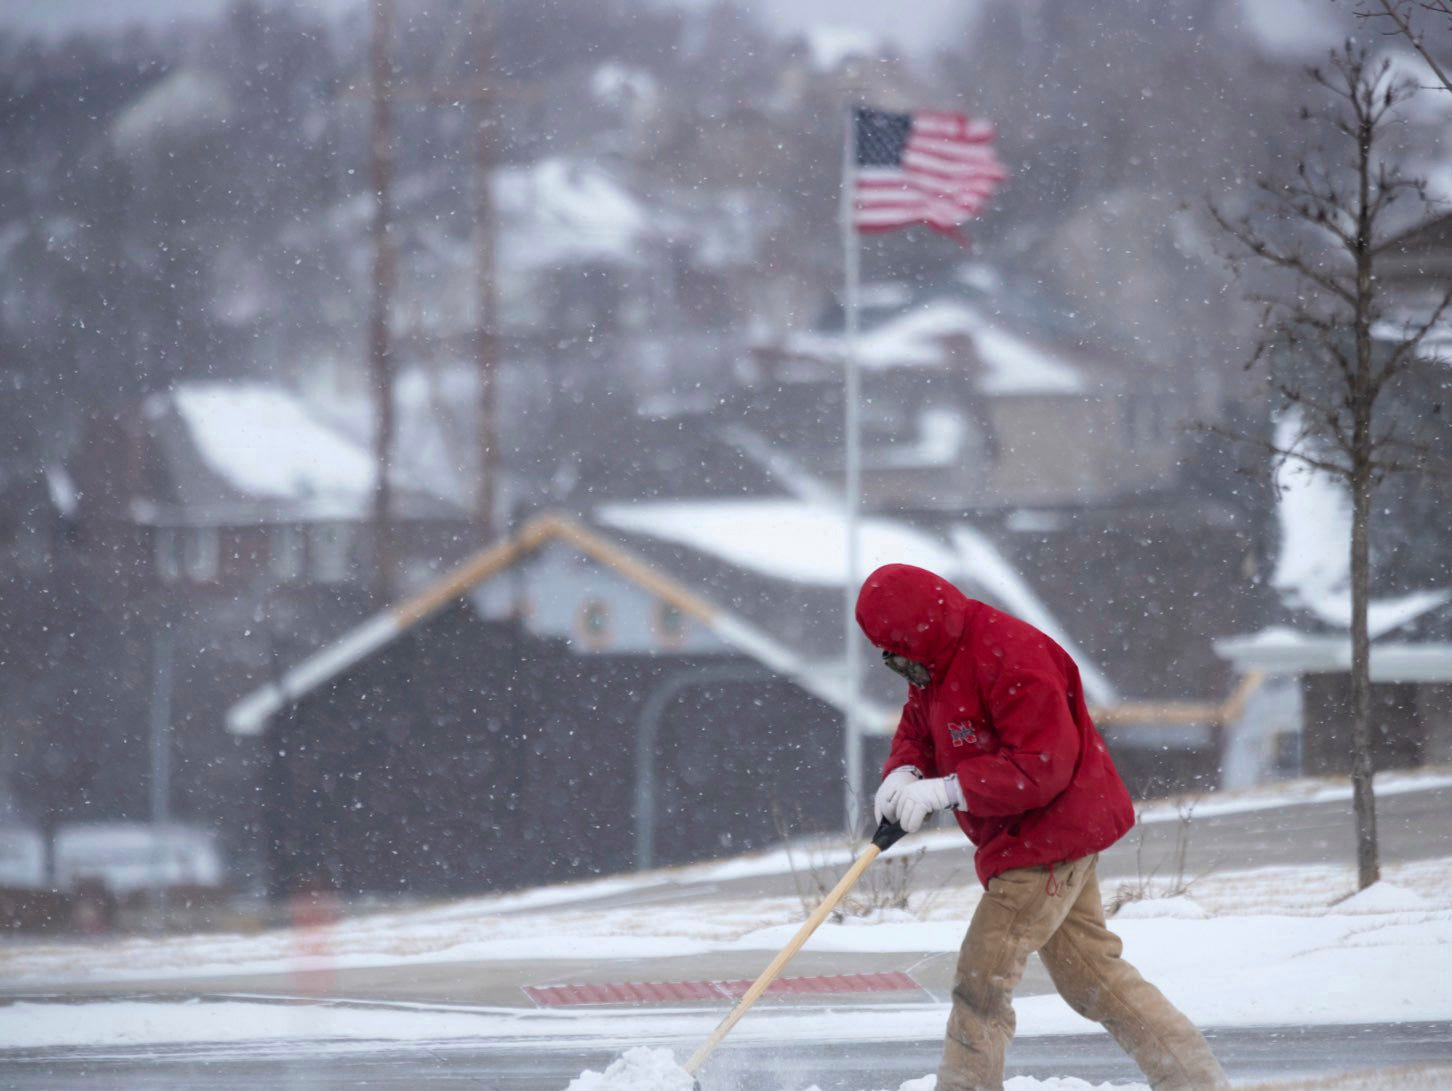 Ernesto Montoya clears snow in Papillion, Neb., as frigid temperatures hit the midwest on Feb. 7, 2019.